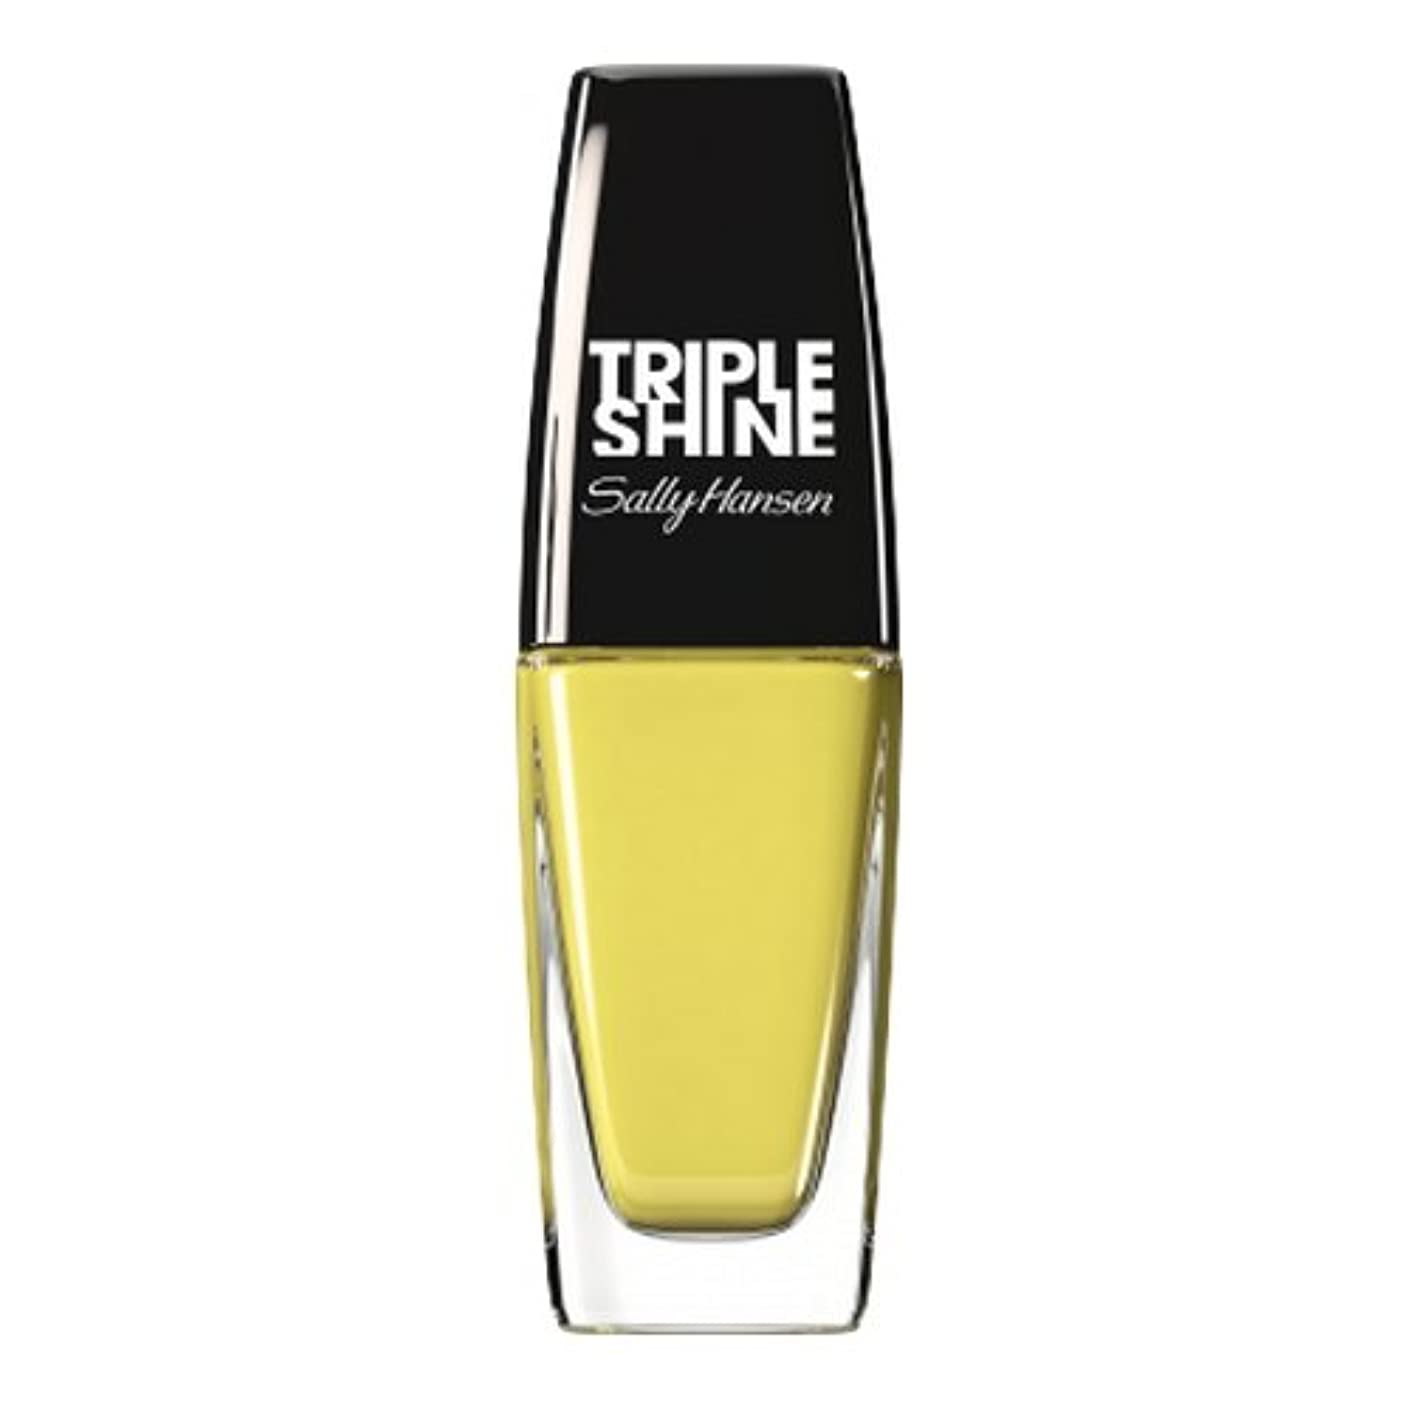 ボルト単語大型トラック(3 Pack) SALLY HANSEN Triple Shine Nail Polish - Statemint (並行輸入品)